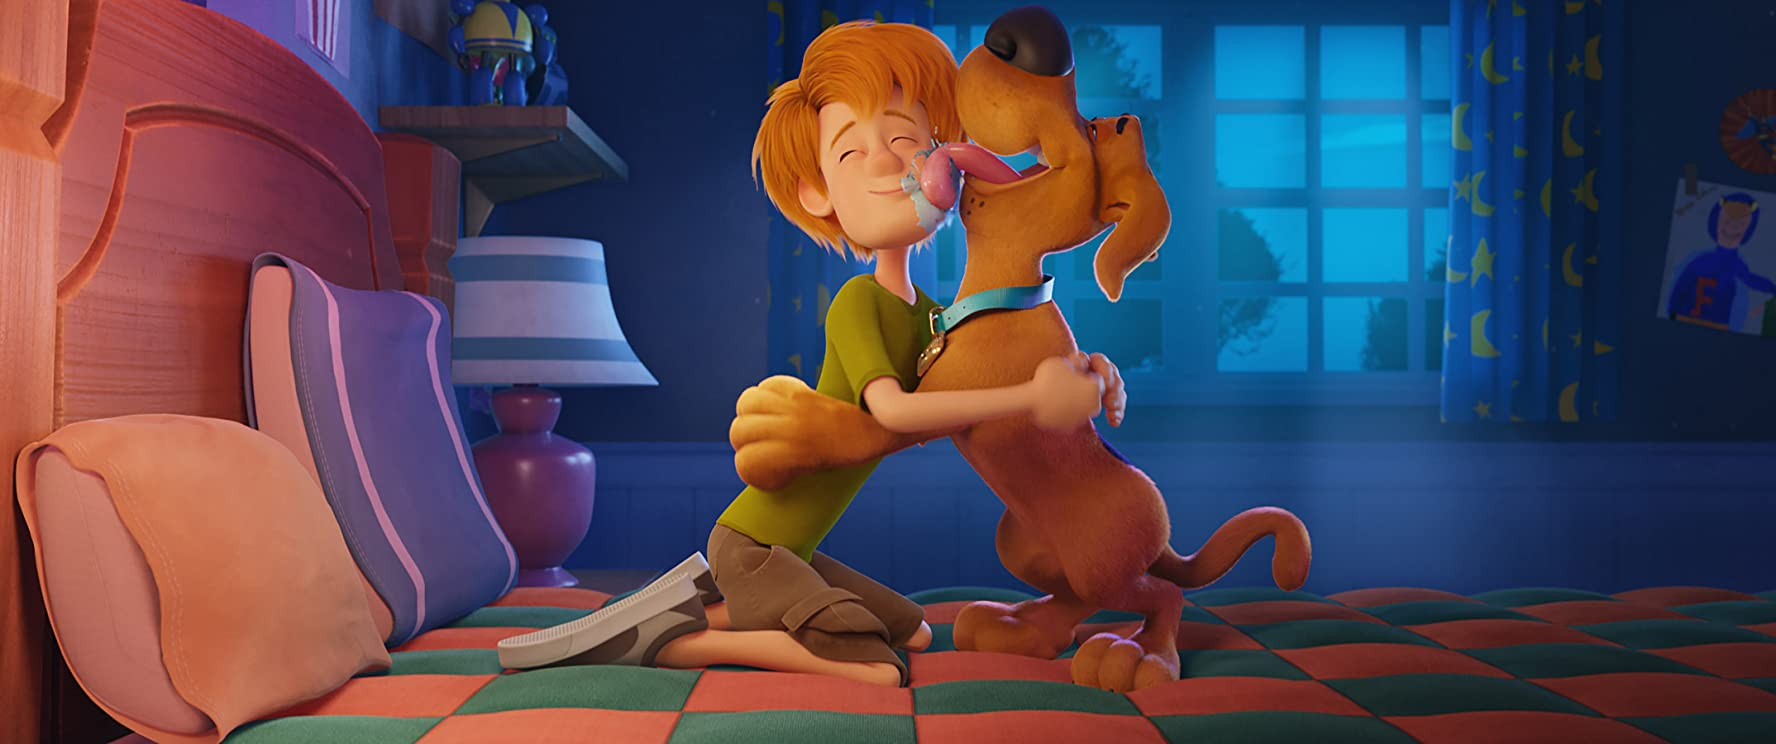 Scoob parent guide and movie review for parents